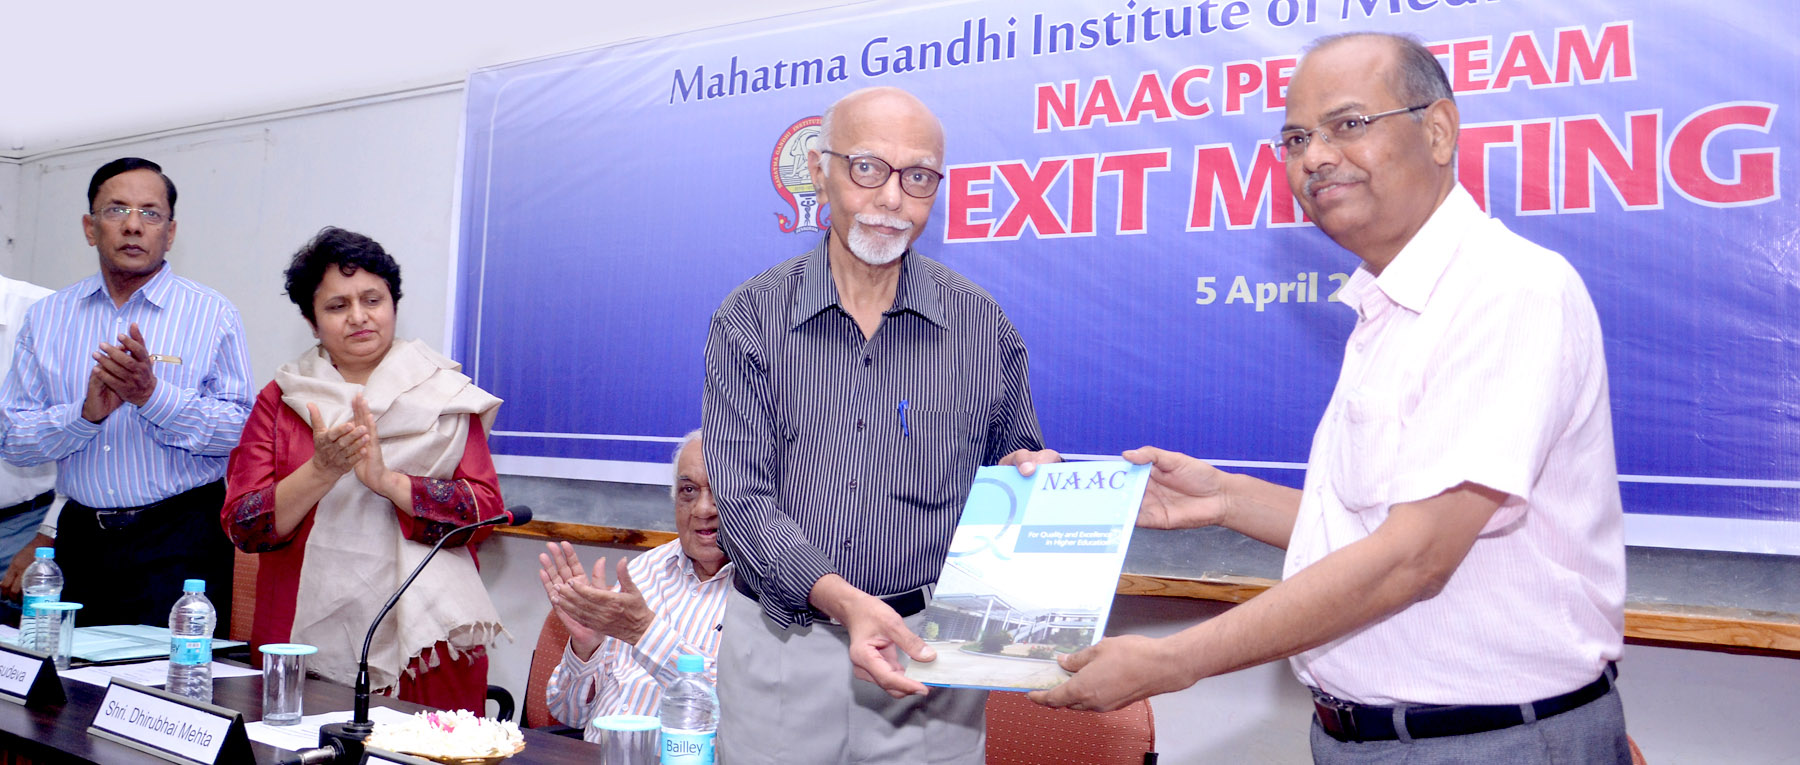 Dr S Rangaswami, Chairperson of the NAAC Peer Team, handing over the Peer Team Report to Dr KR Patond, Dean MGIMS